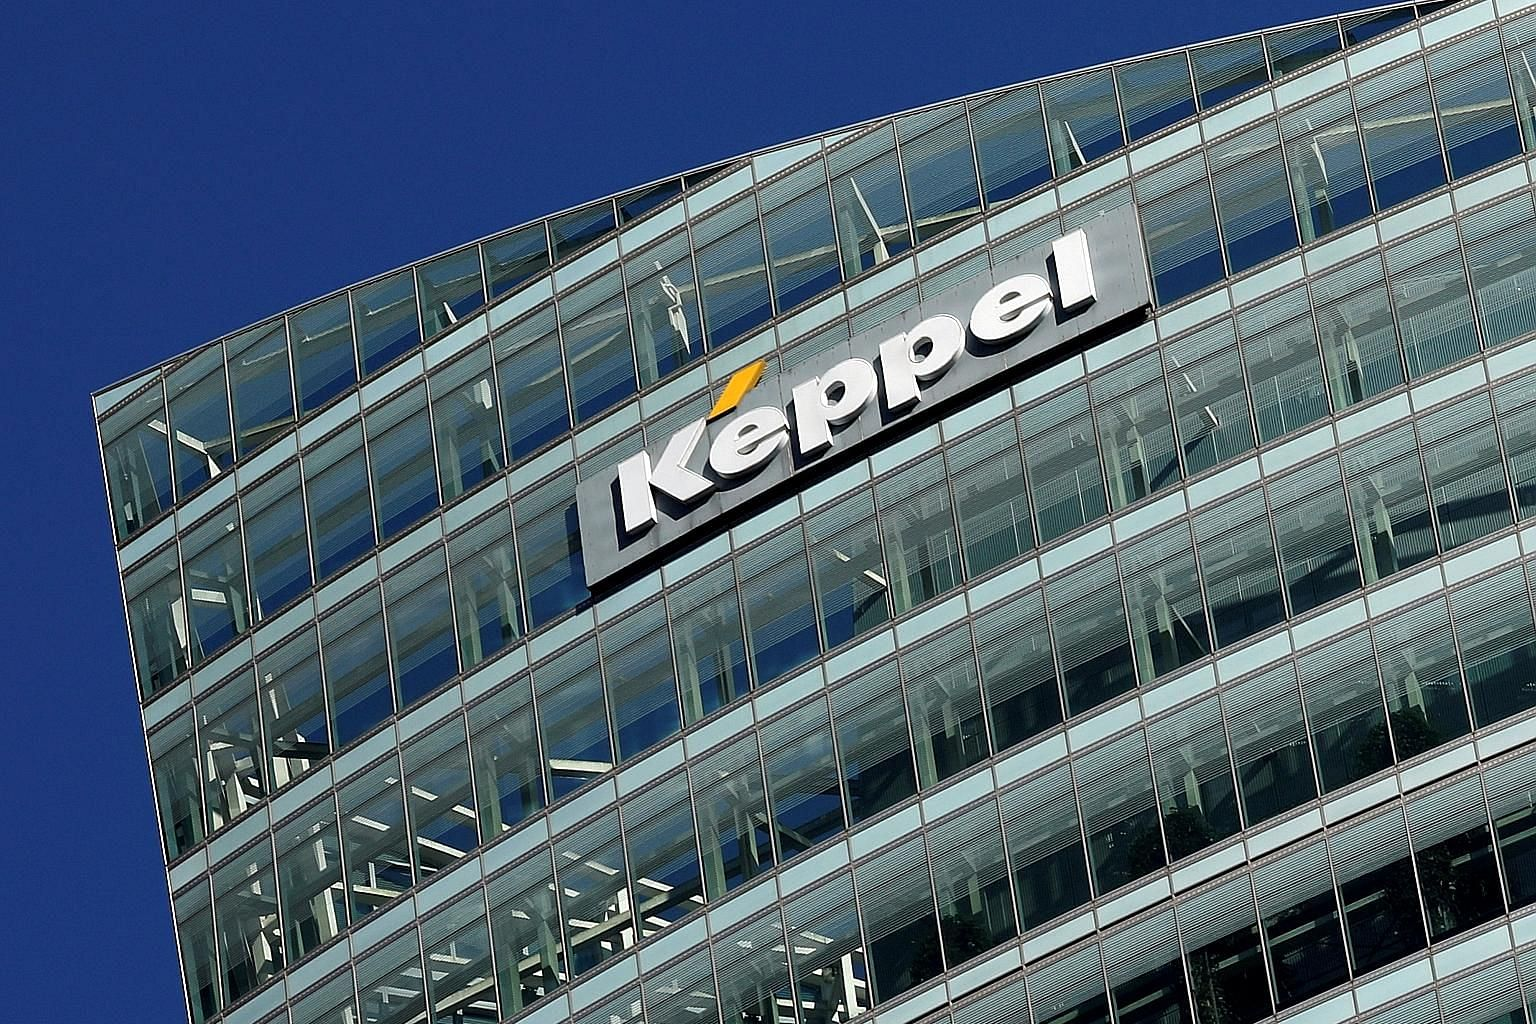 On Monday evening, Singapore investment firm Temasek announced that it would not proceed with its pre-conditional $4.1 billion partial offer for Keppel Corporation after Keppel breached a key condition of the deal after posting a $697.6 million net l